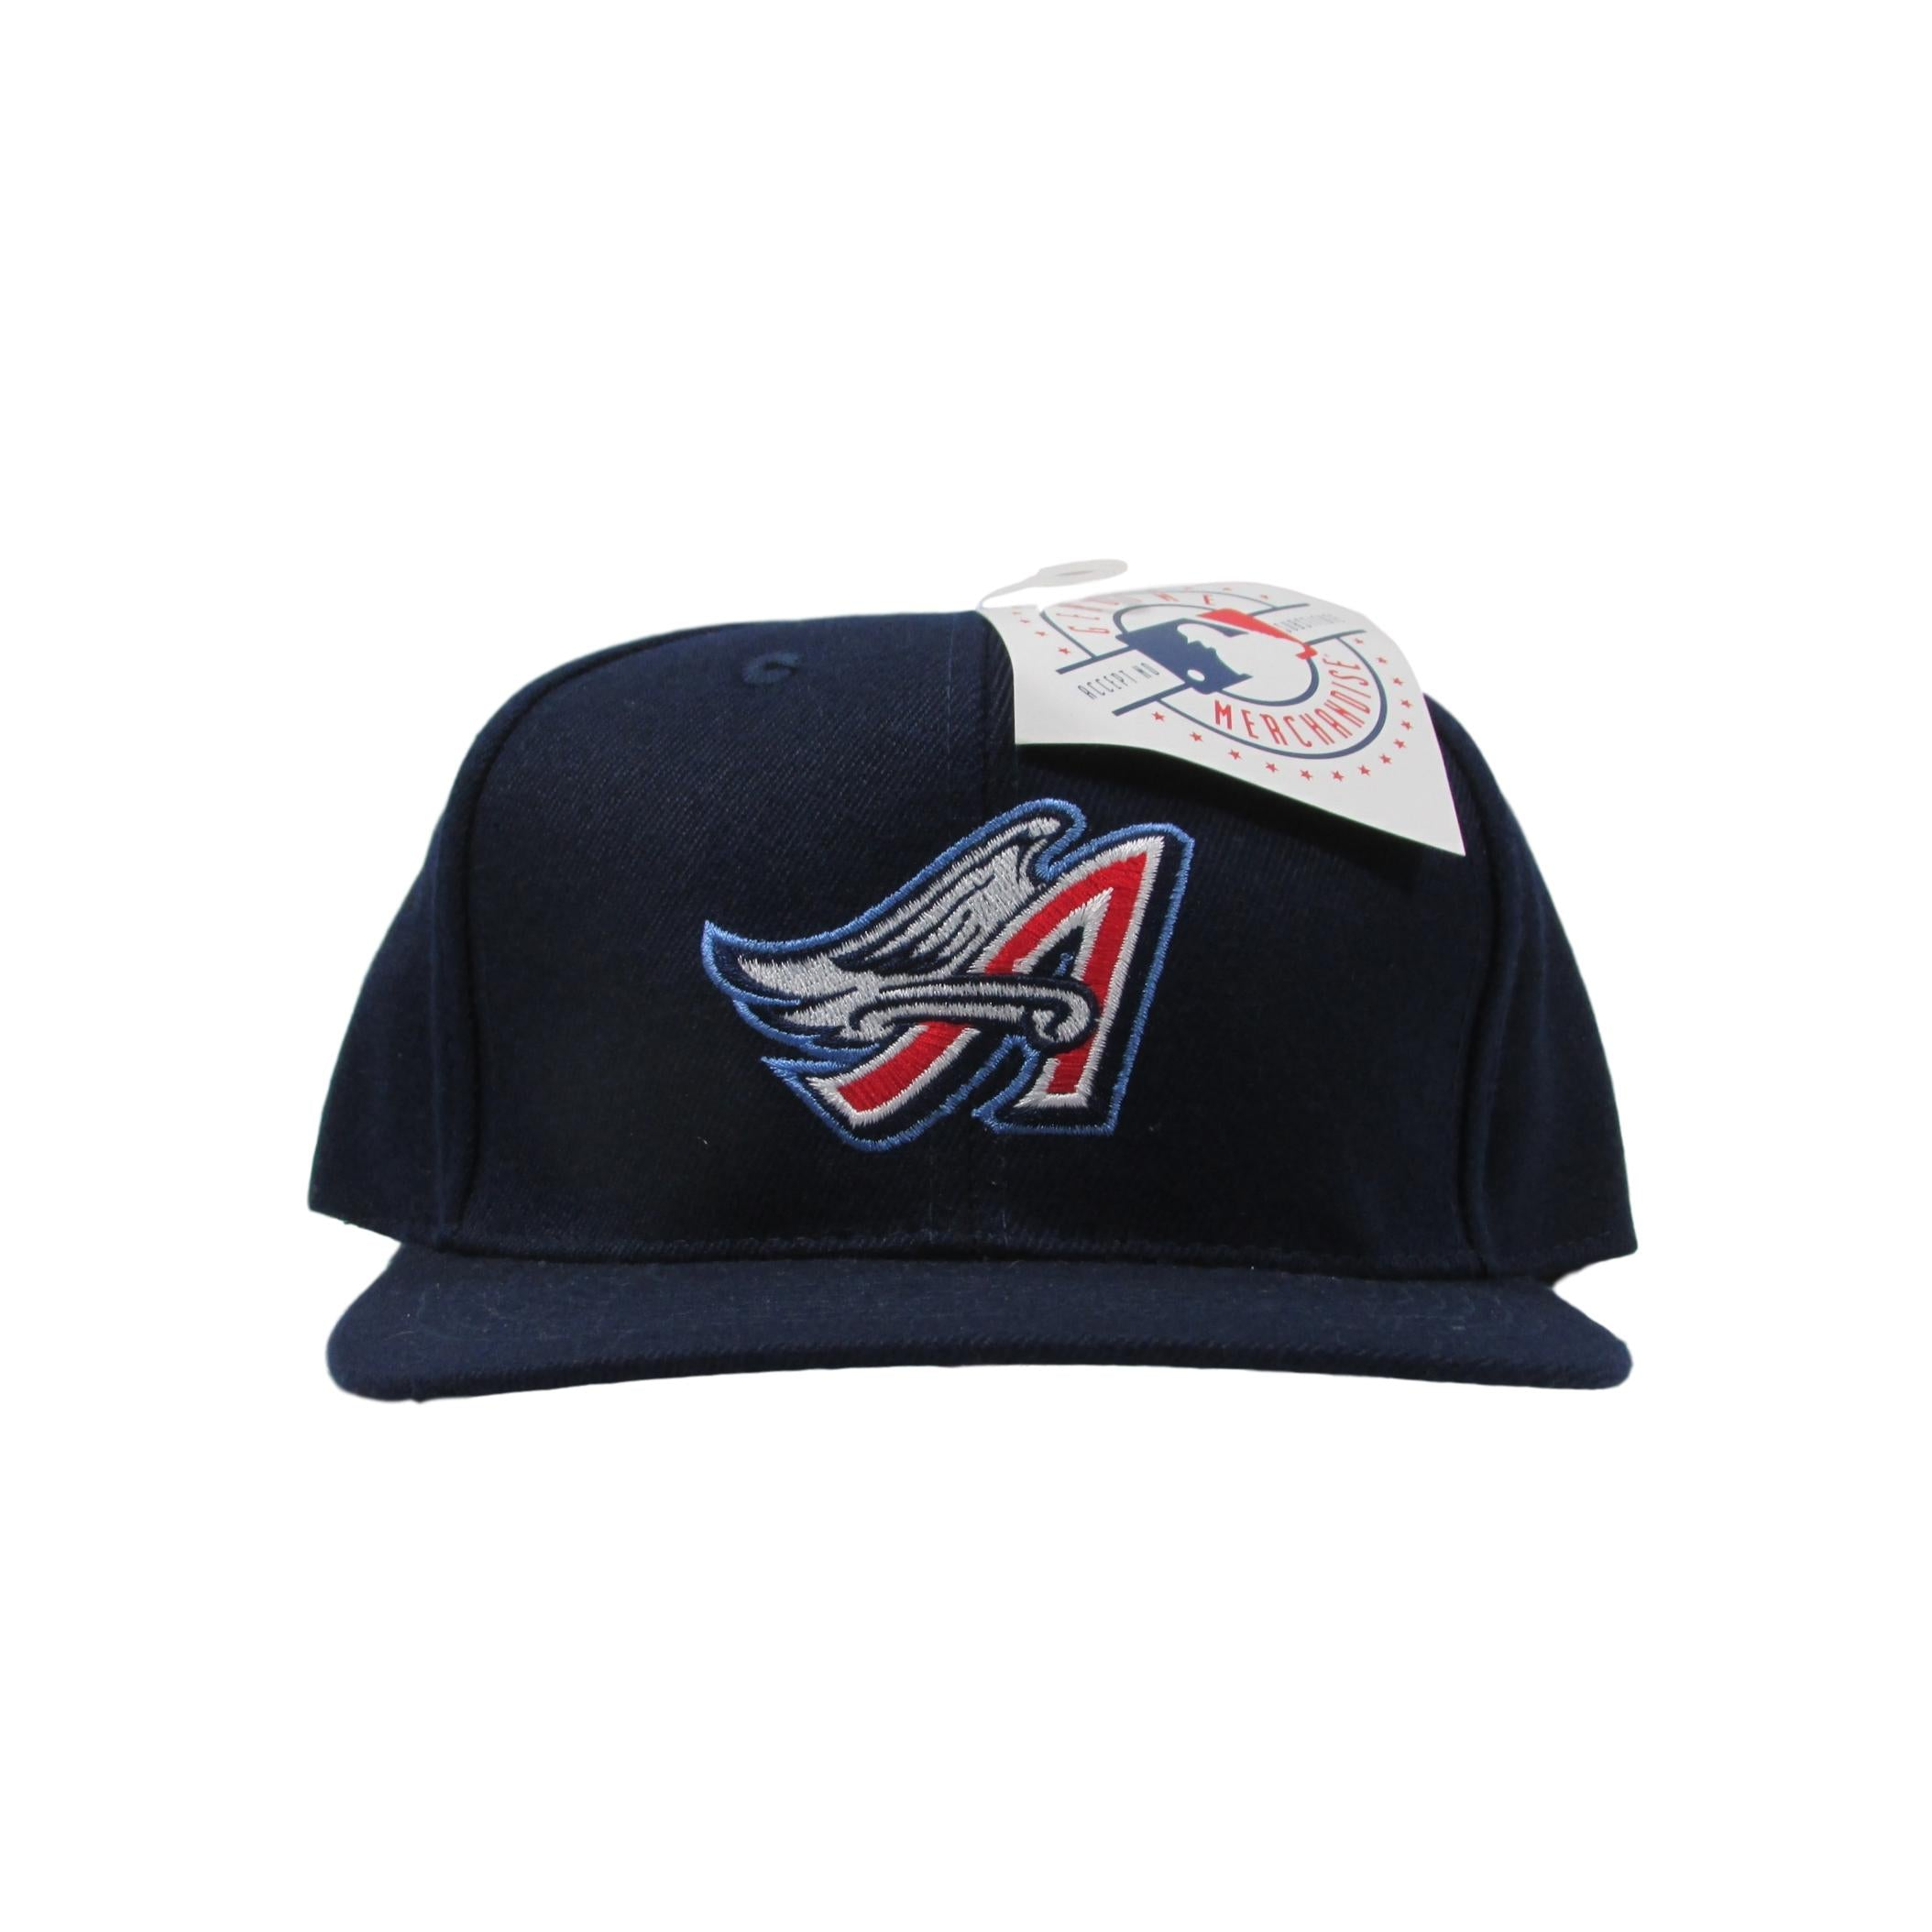 California Angels of Anaheim Los Angeles Baseball Deadstock Snapback Hat